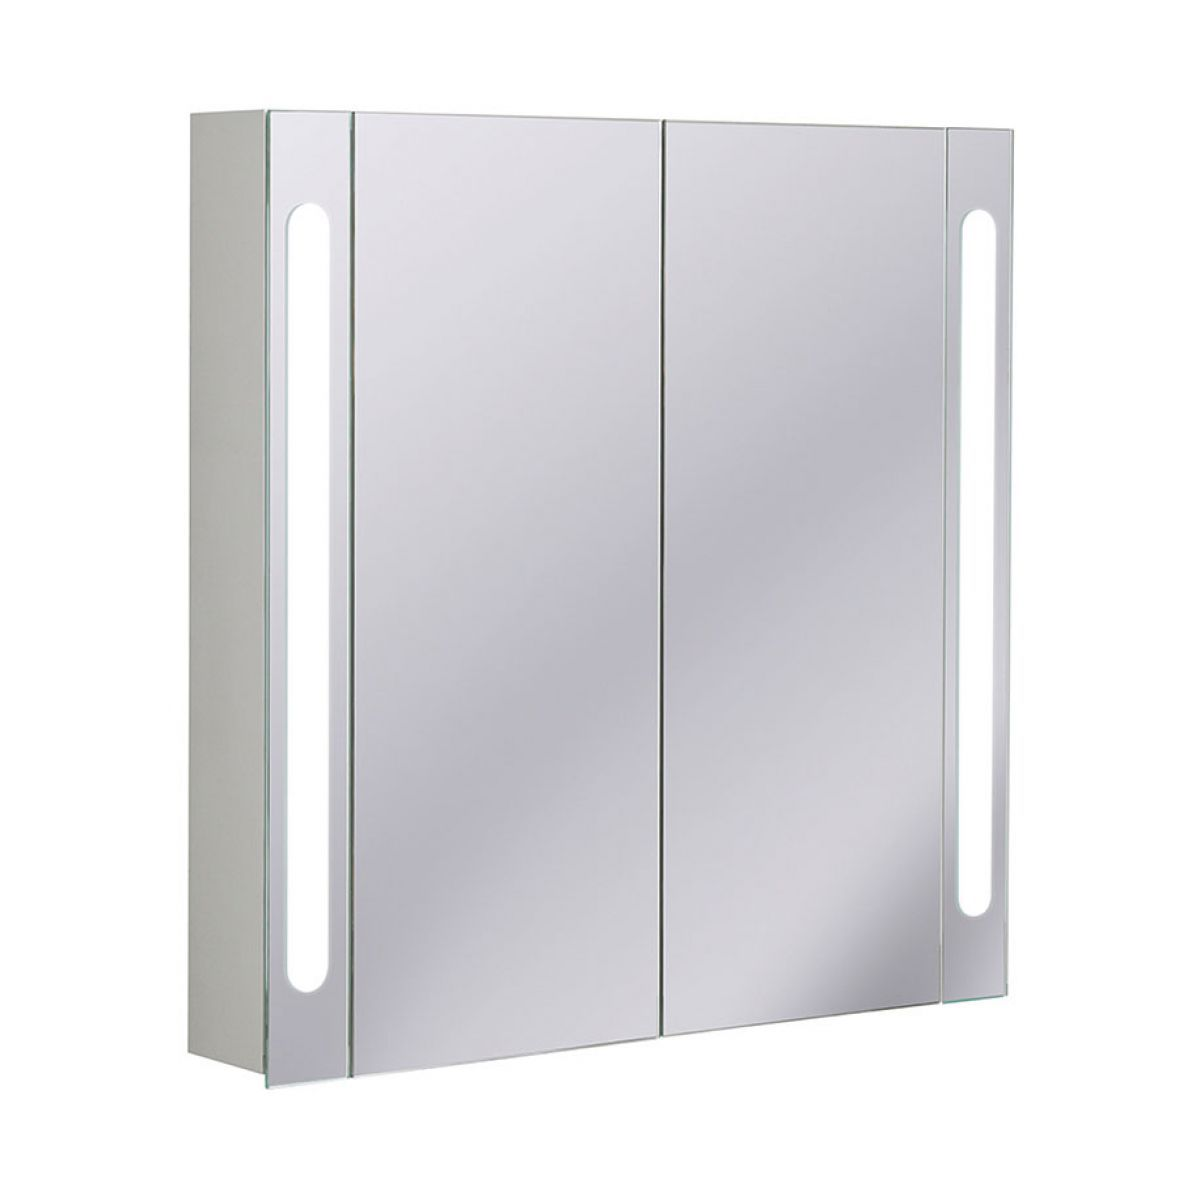 Alu Fensterbank Bauhaus Bauhaus Mirrored Aluminium Wall Hung Cabinet Uk Bathrooms